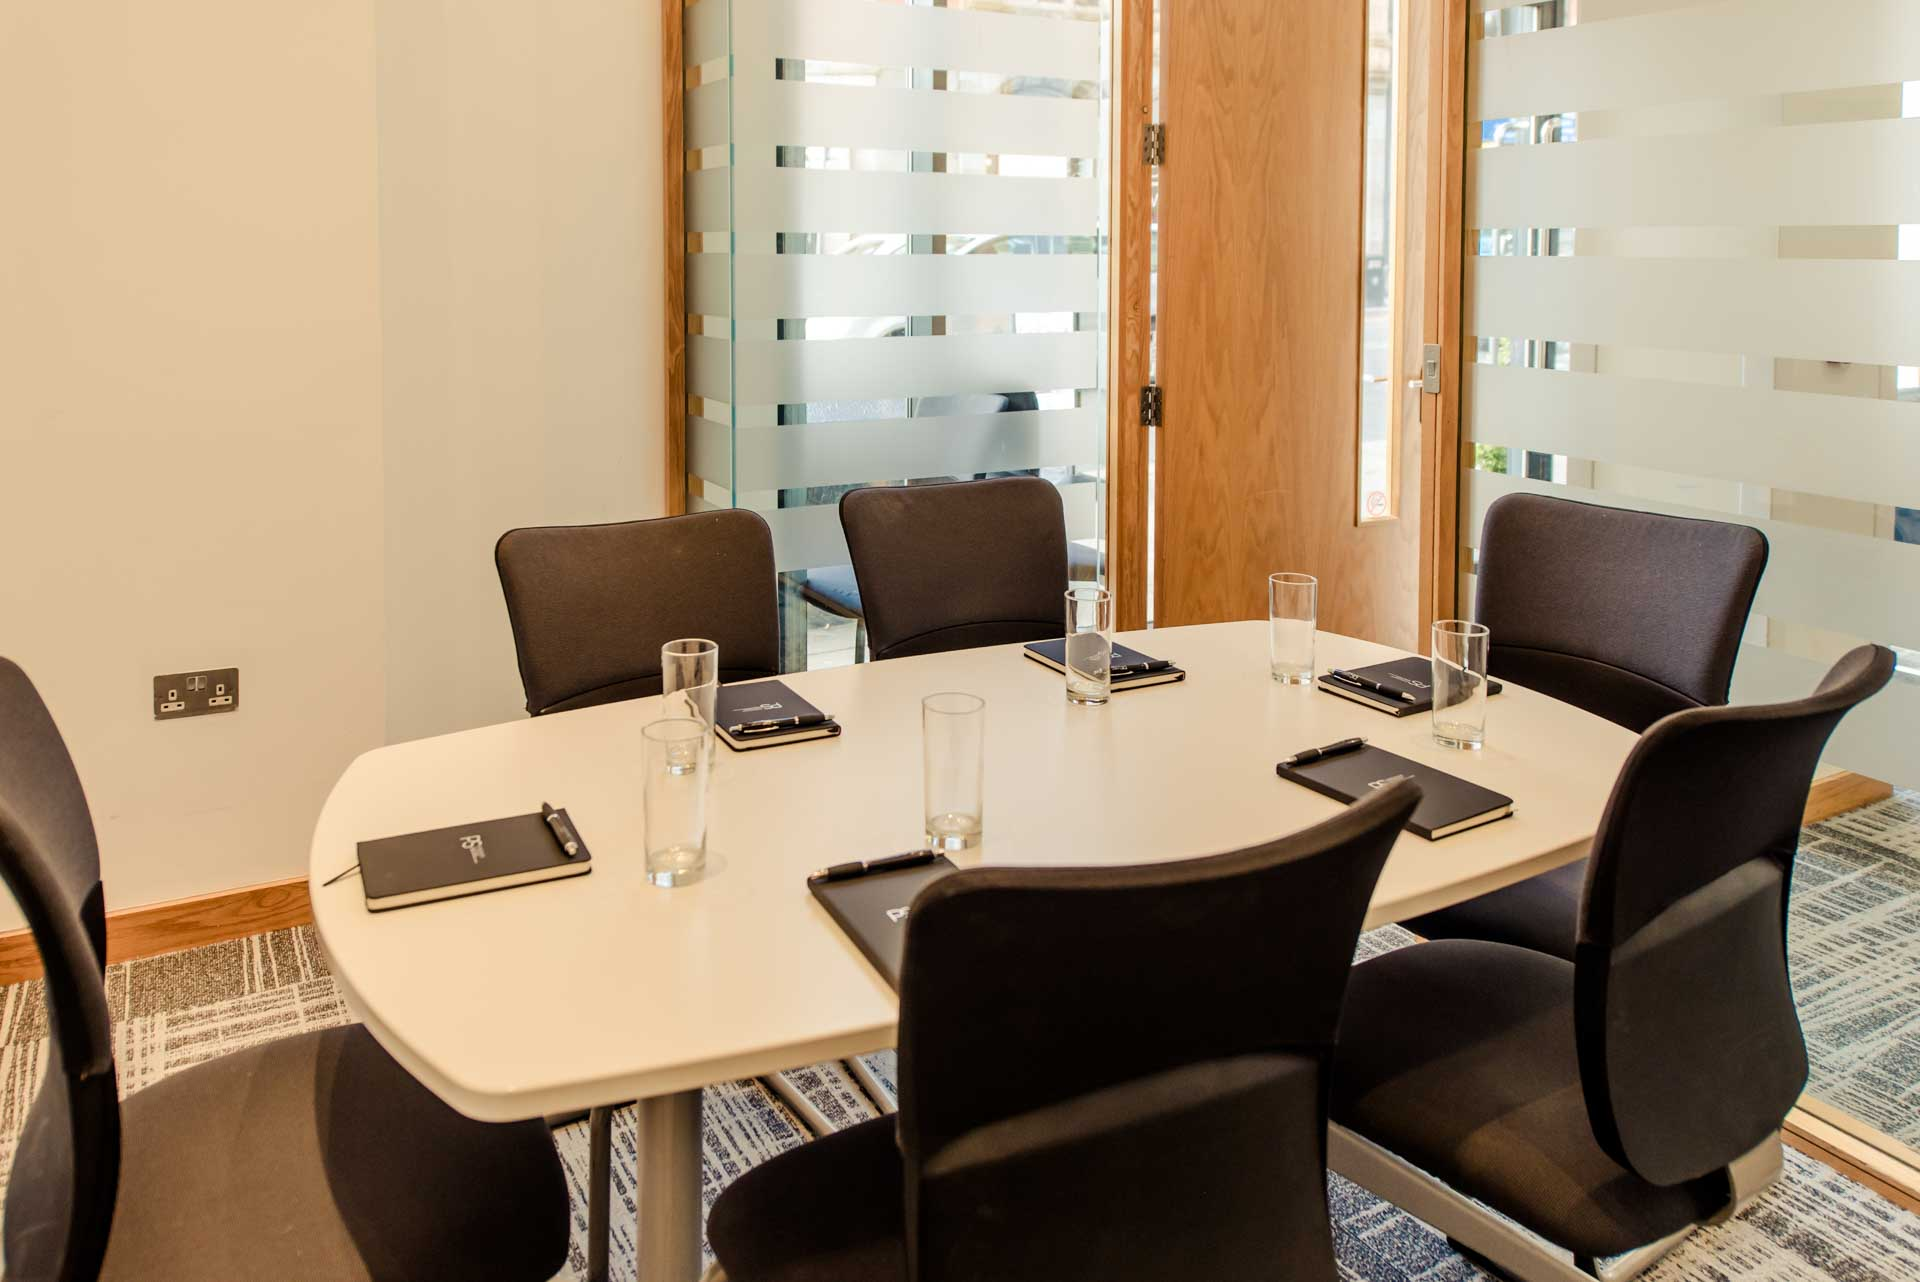 PREMIER SUITES Manchester meeting room